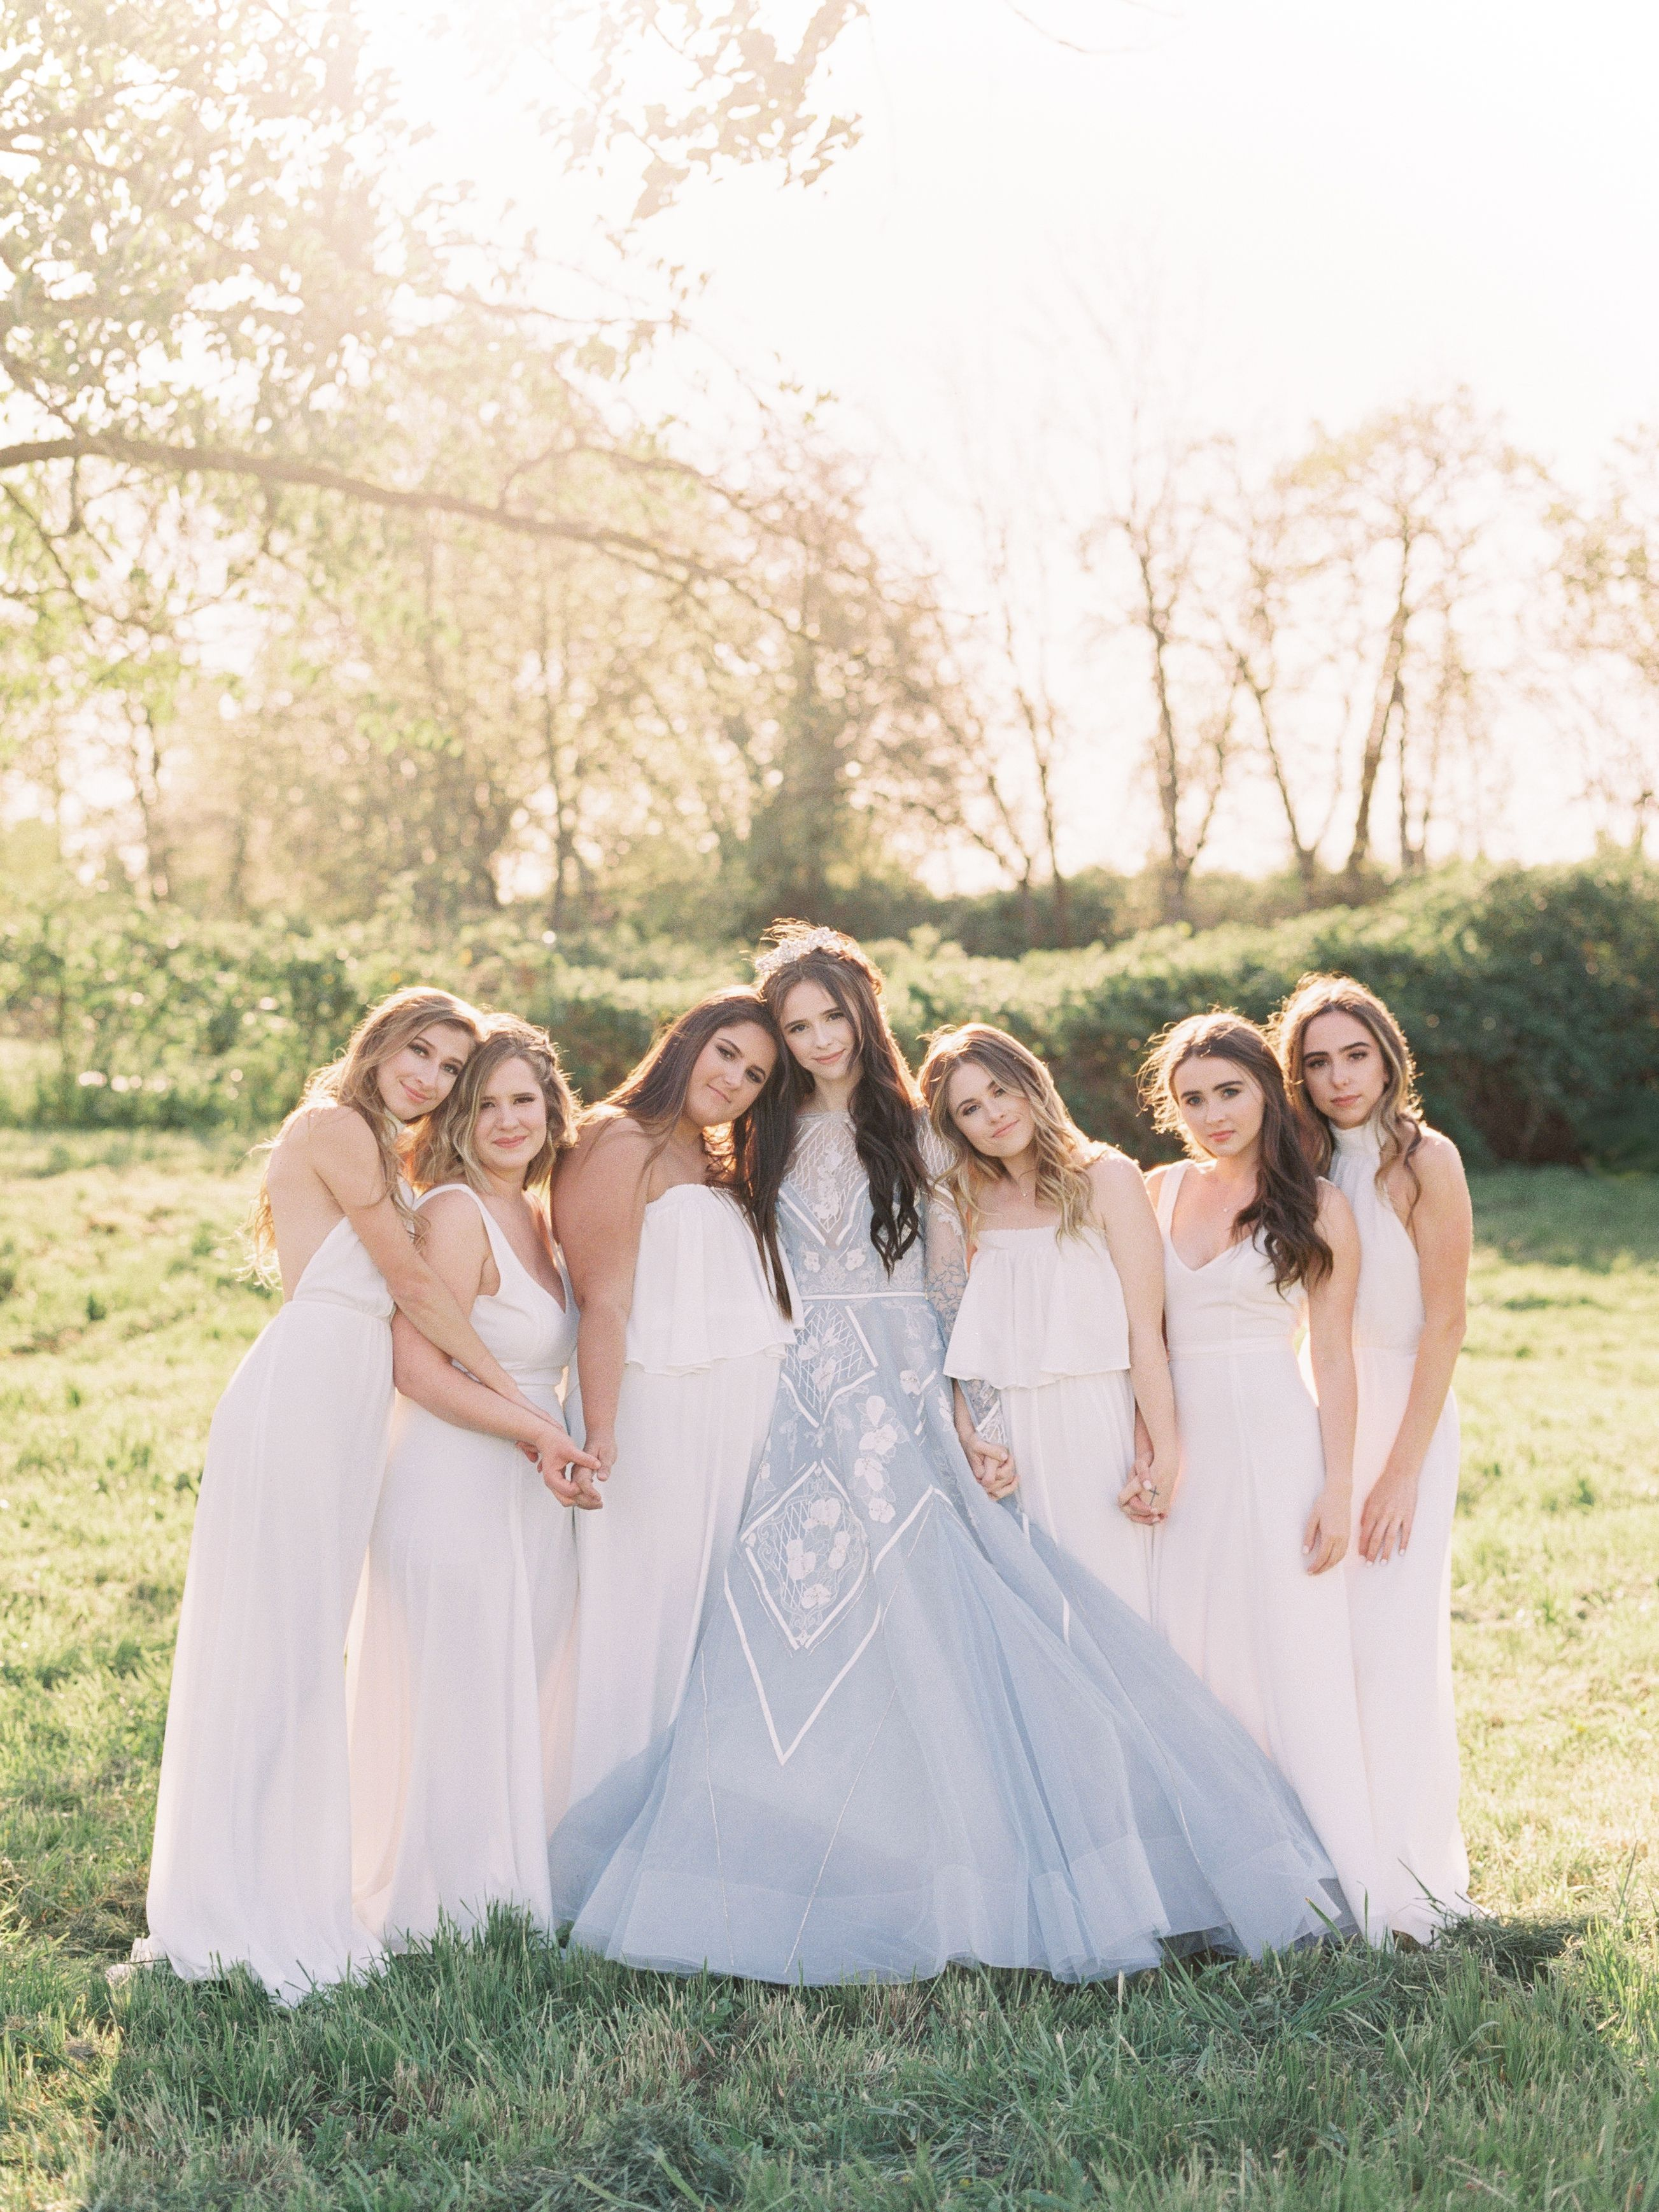 Wedding gown by hayley paige bridesmaids dresses by show me your